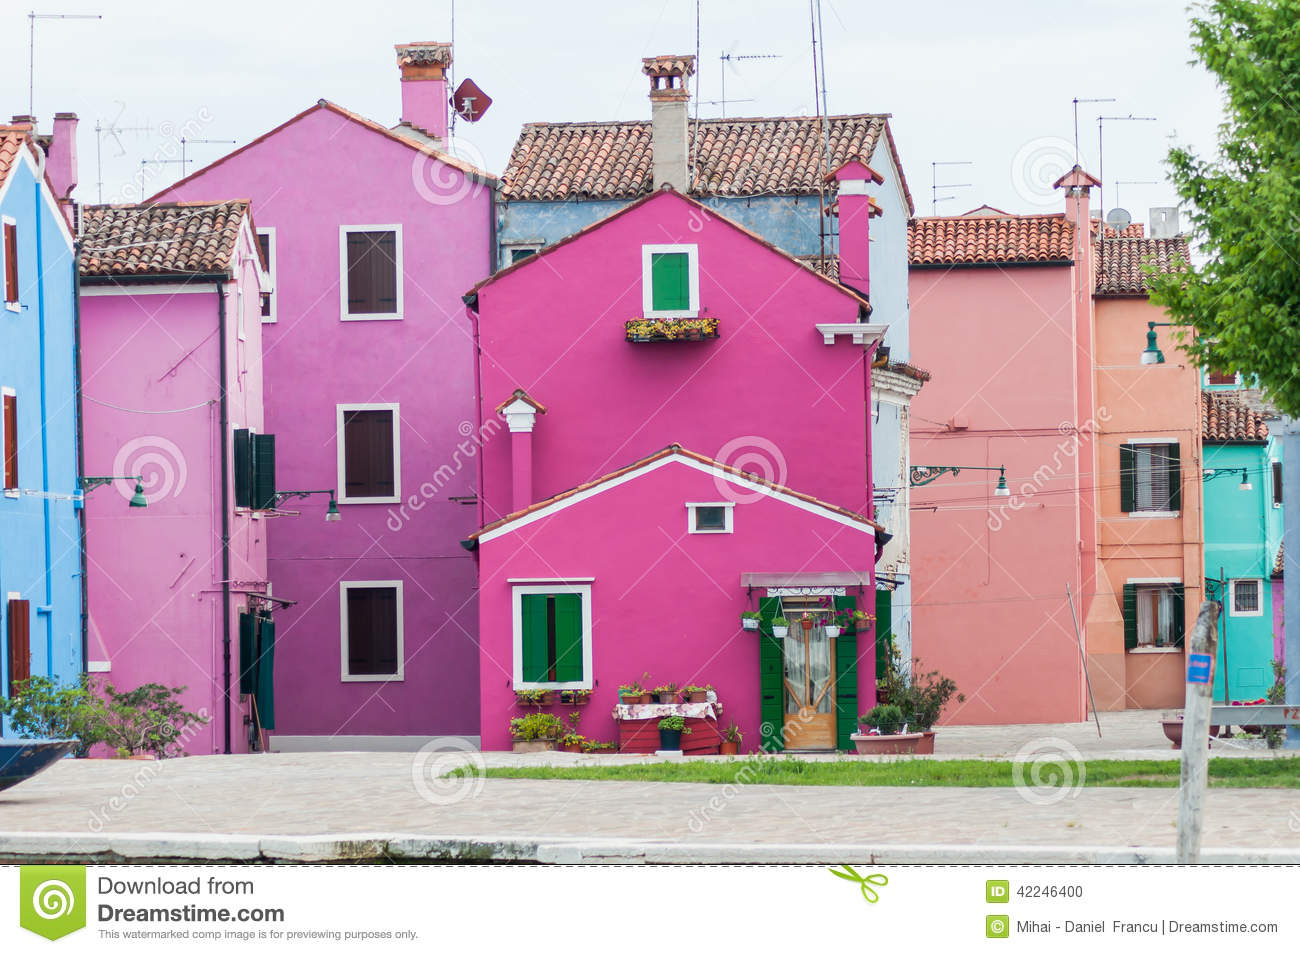 Colorful house stock photo. Image of city, italy, gate - 42246400